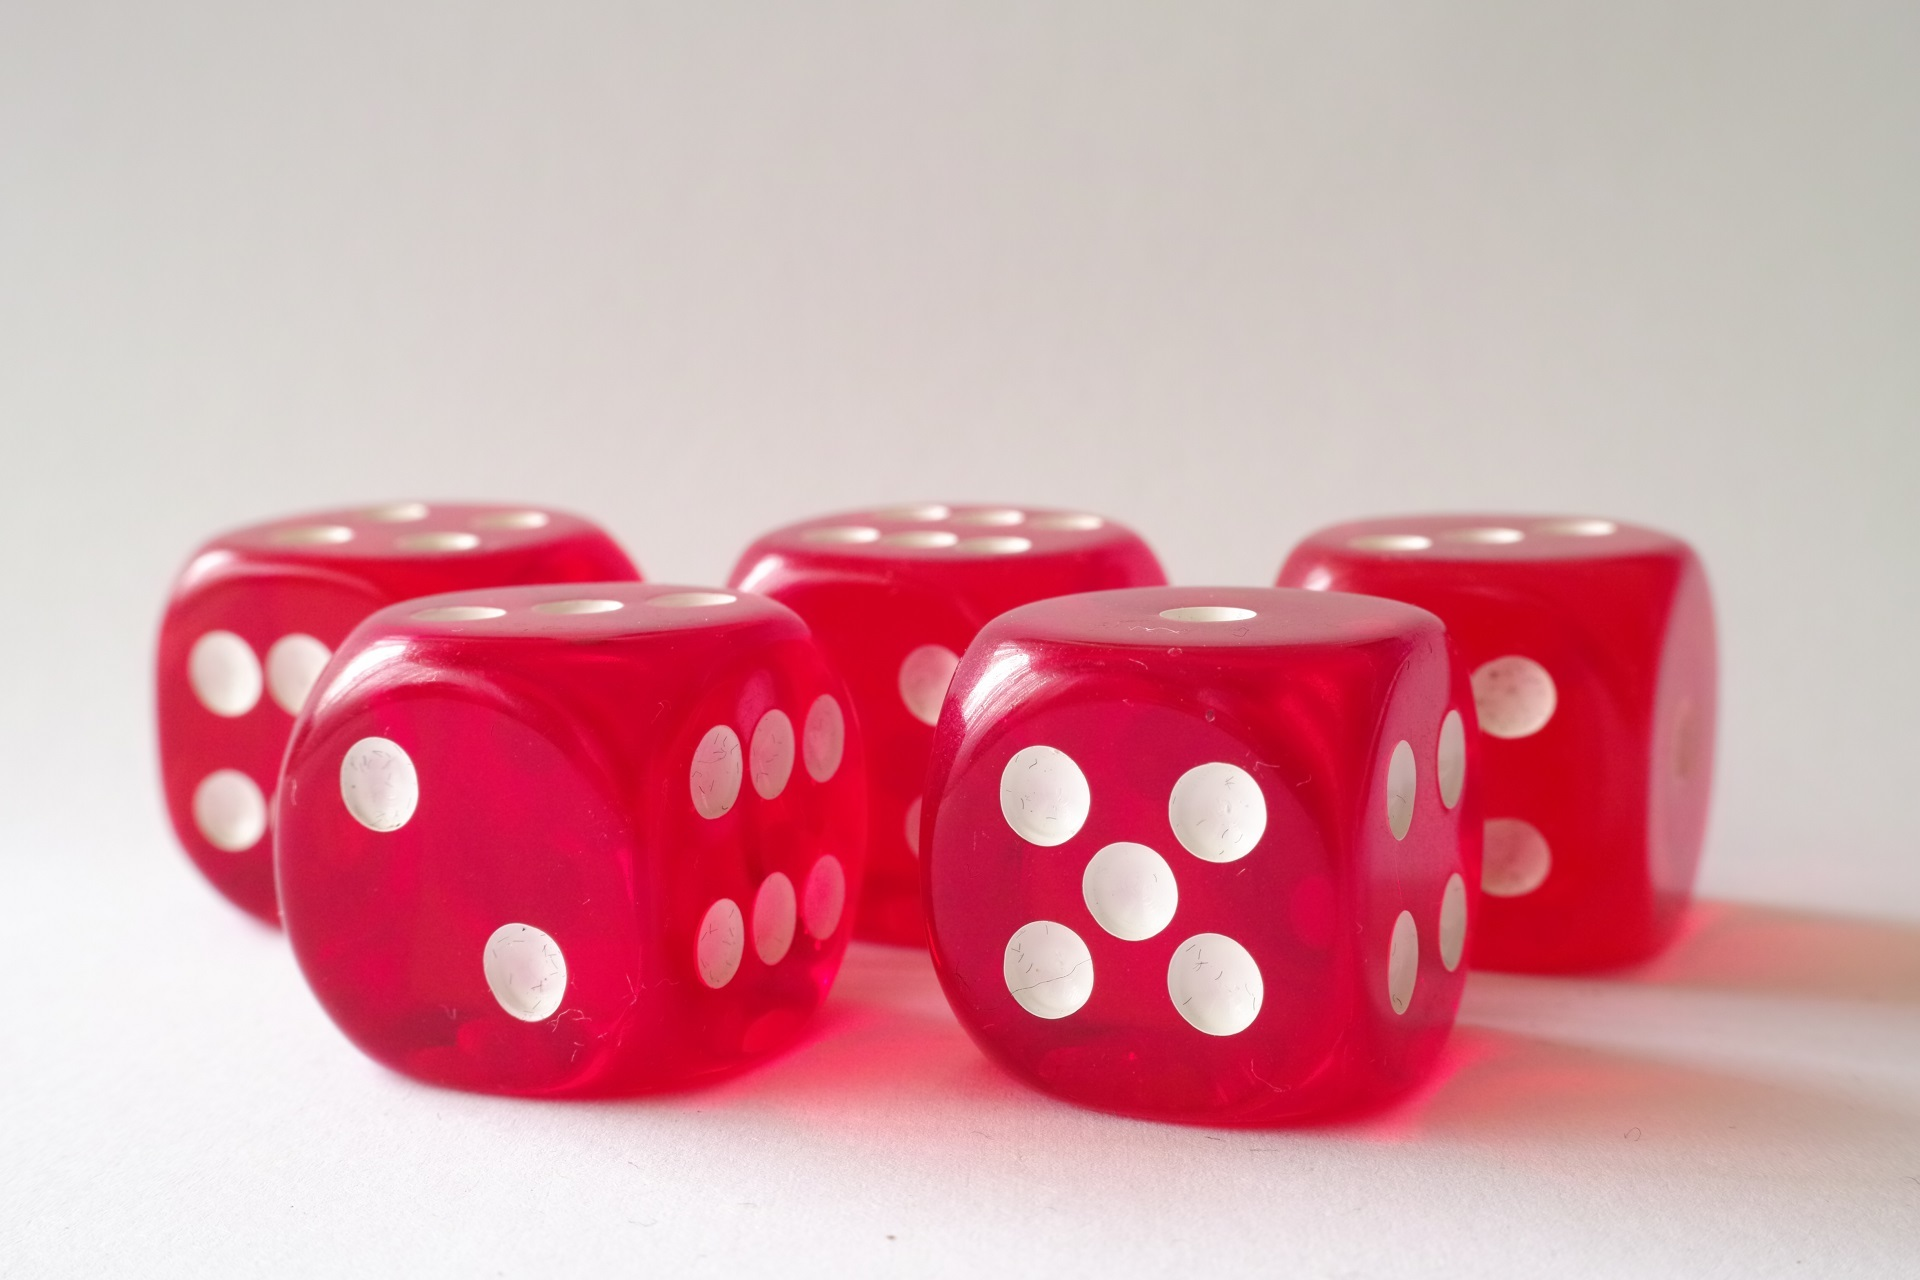 free photo red dice red object number free download jooinn